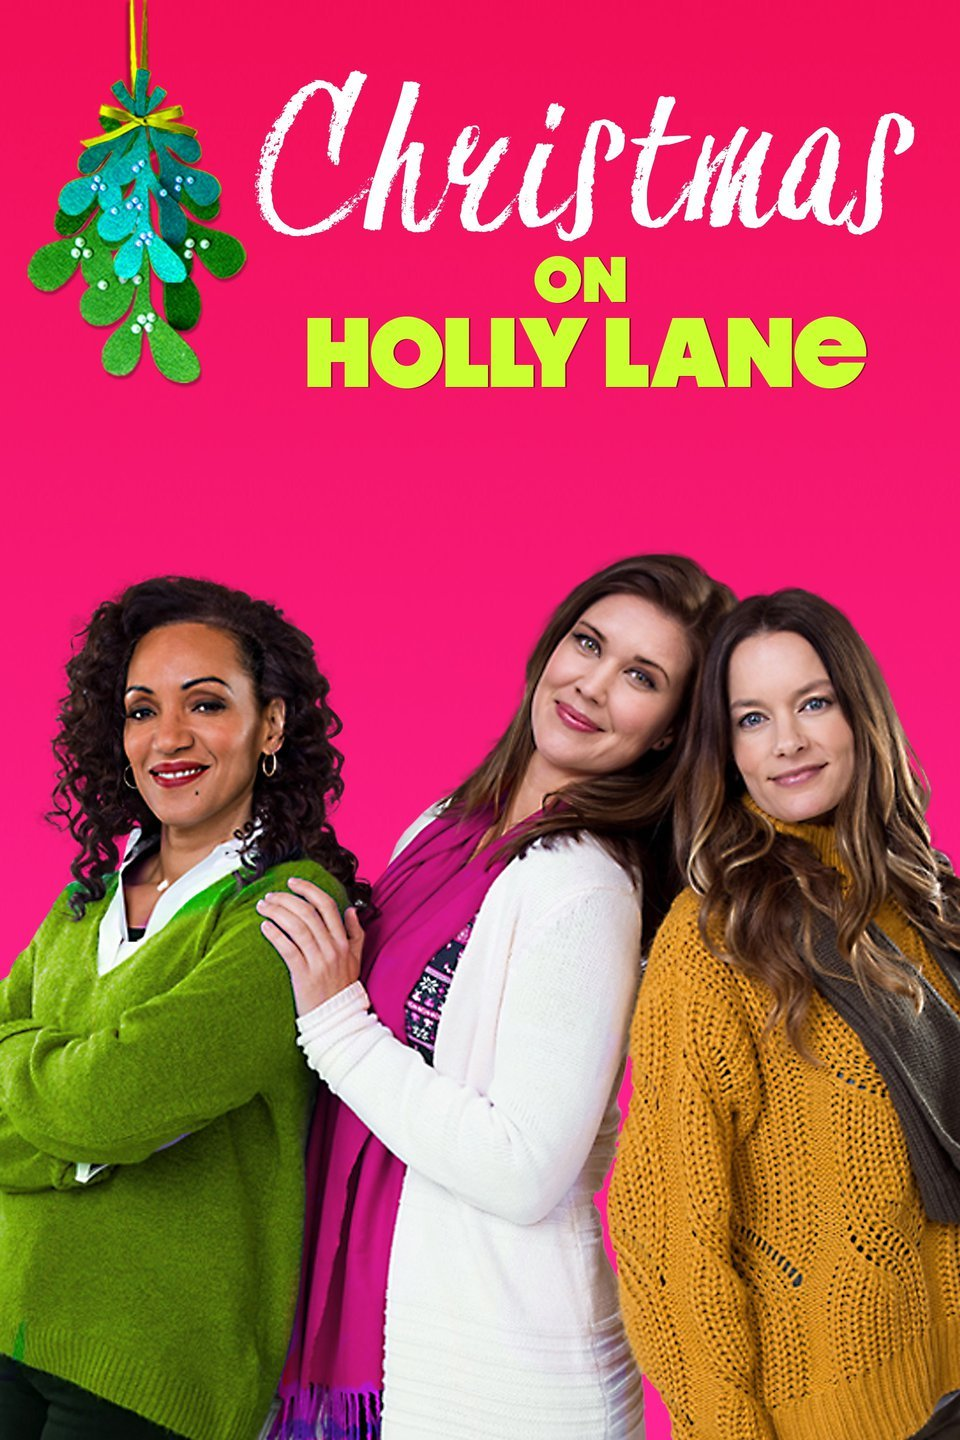 Shoelaces For Christmas.Christmas On Holly Lane 2018 And Shoelaces For Christmas